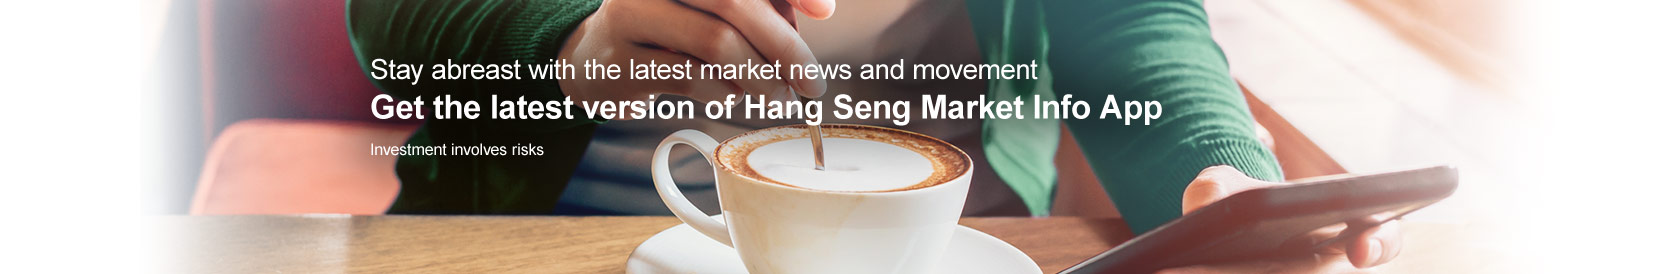 Stay abreast with the latest market news and movement. Get the latest version of Hang Seng Market Info App. Investment involves risks